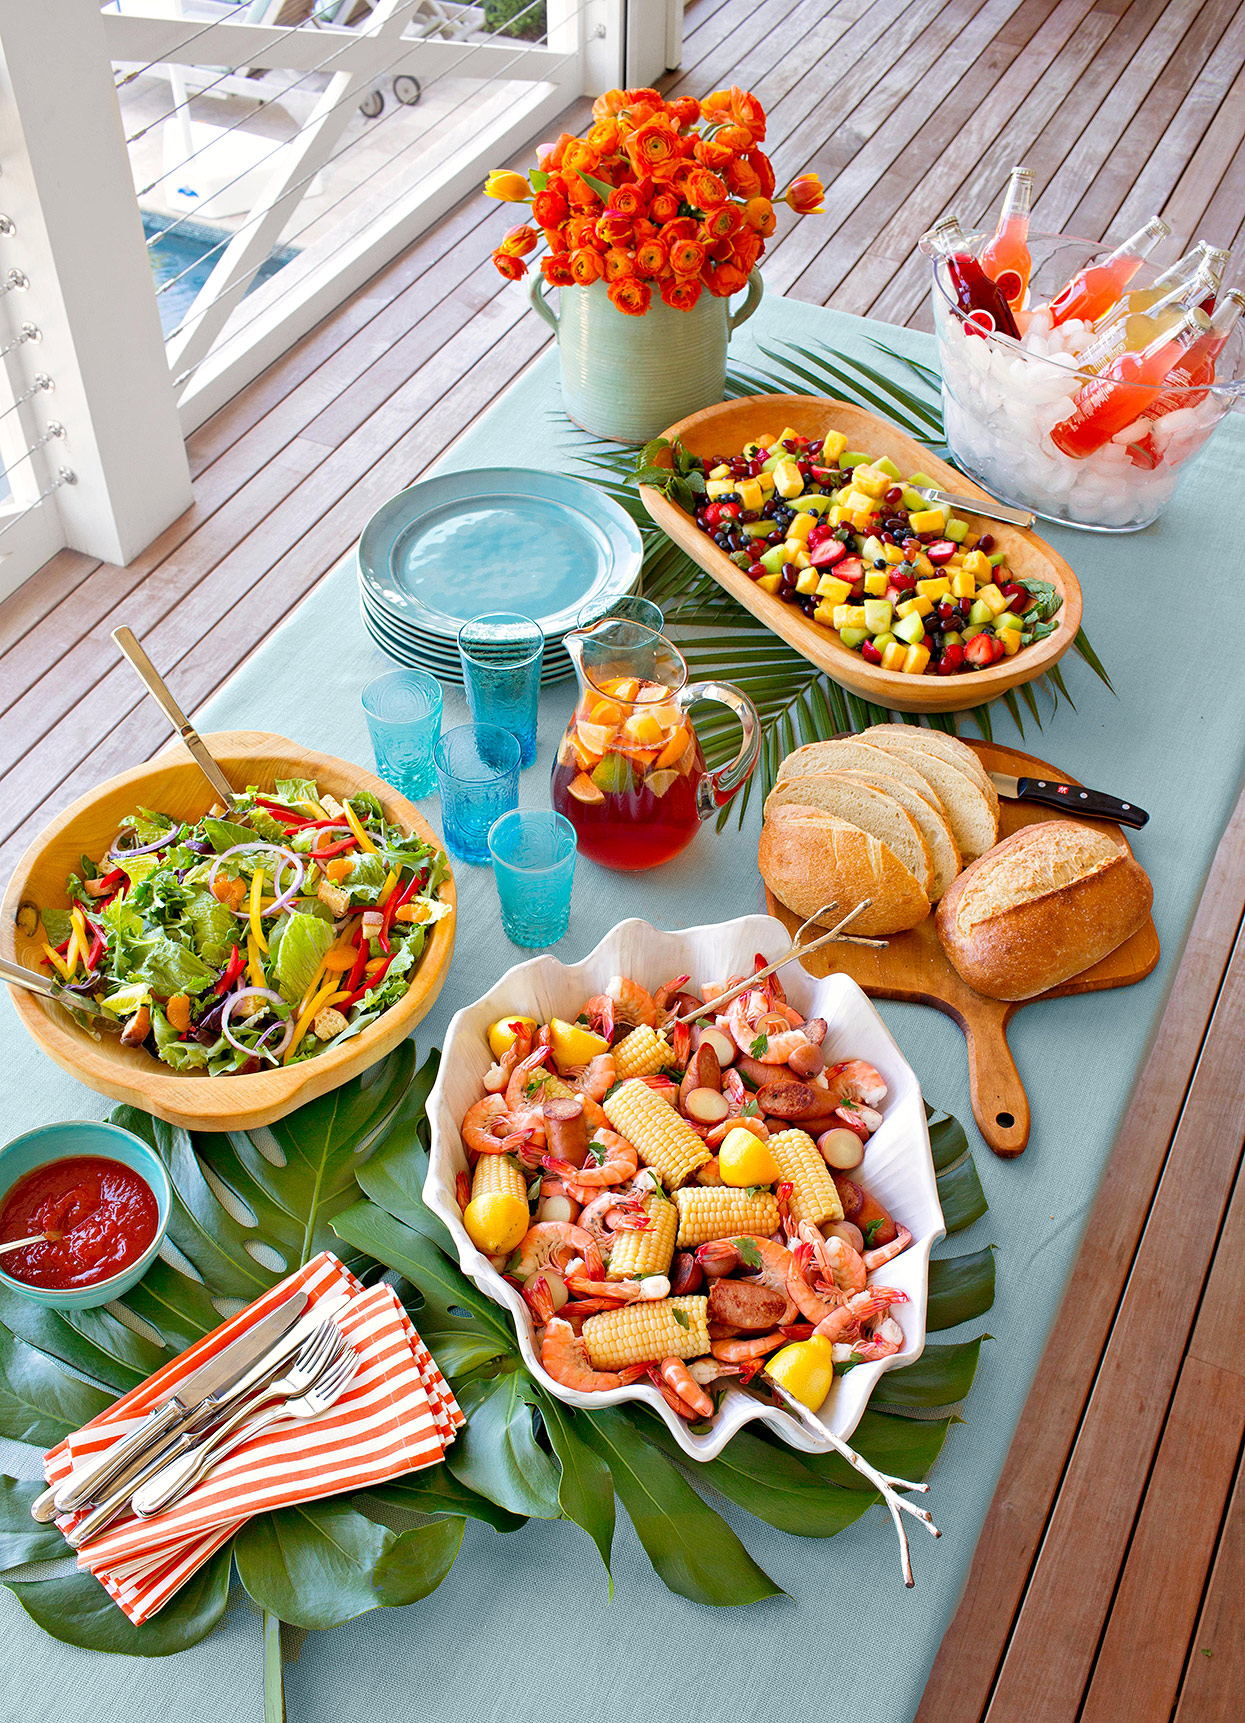 garden party spread with food dishes